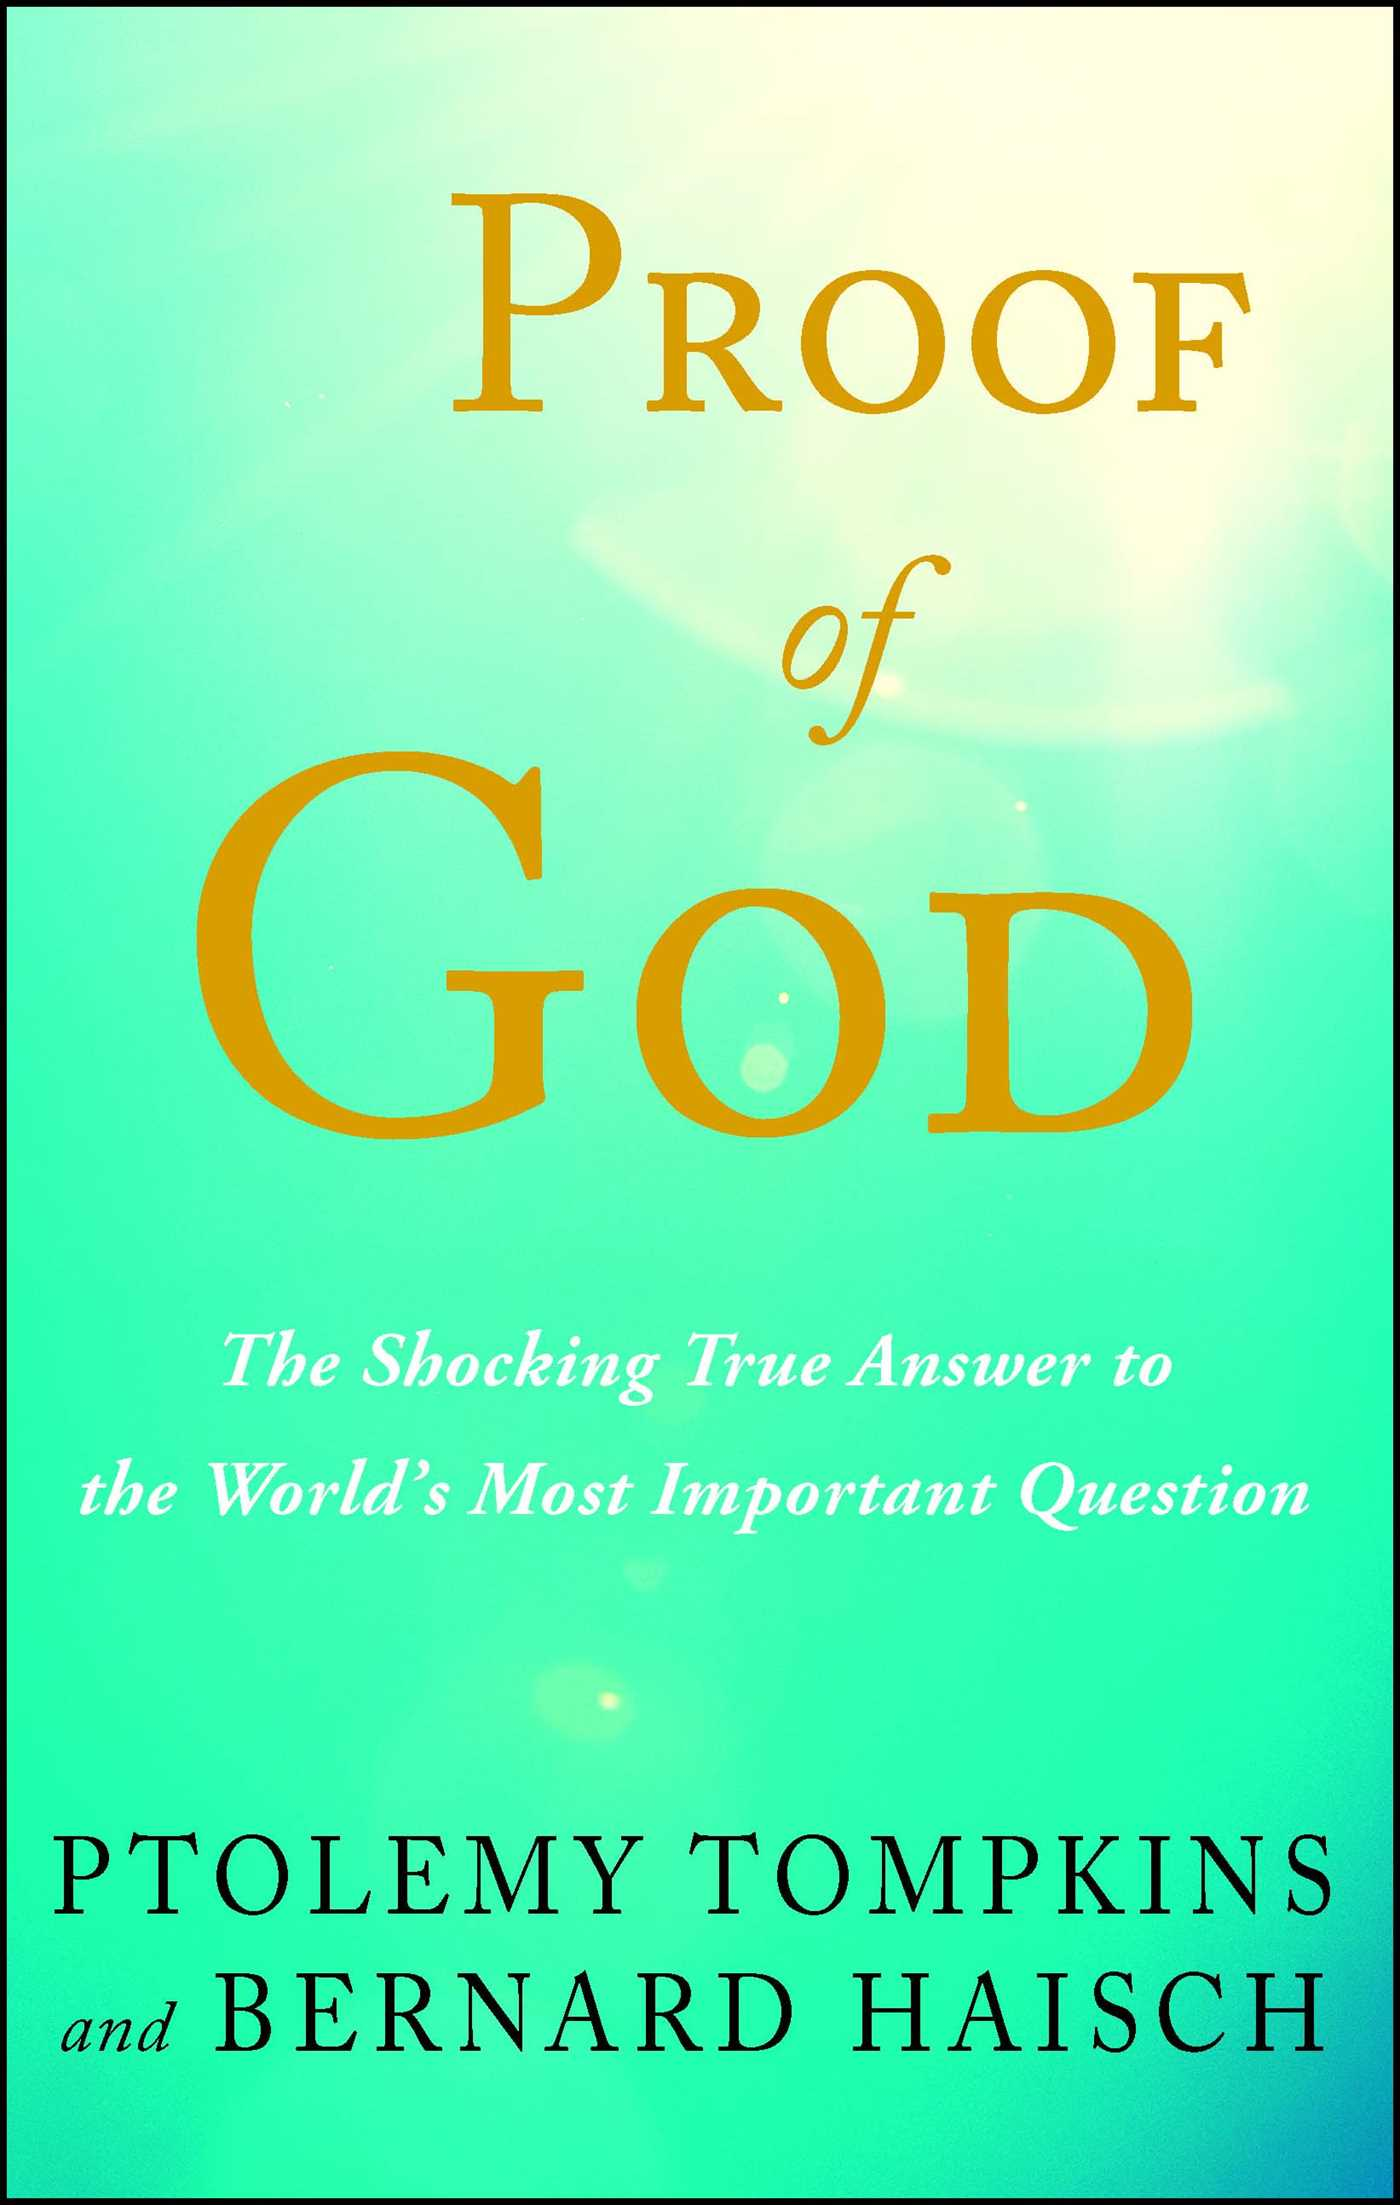 The answer proof of god in heaven the answer proof of god in heaven array proof of god book by ptolemy tompkins bernard haisch official rh simonandschuster com fandeluxe Image collections